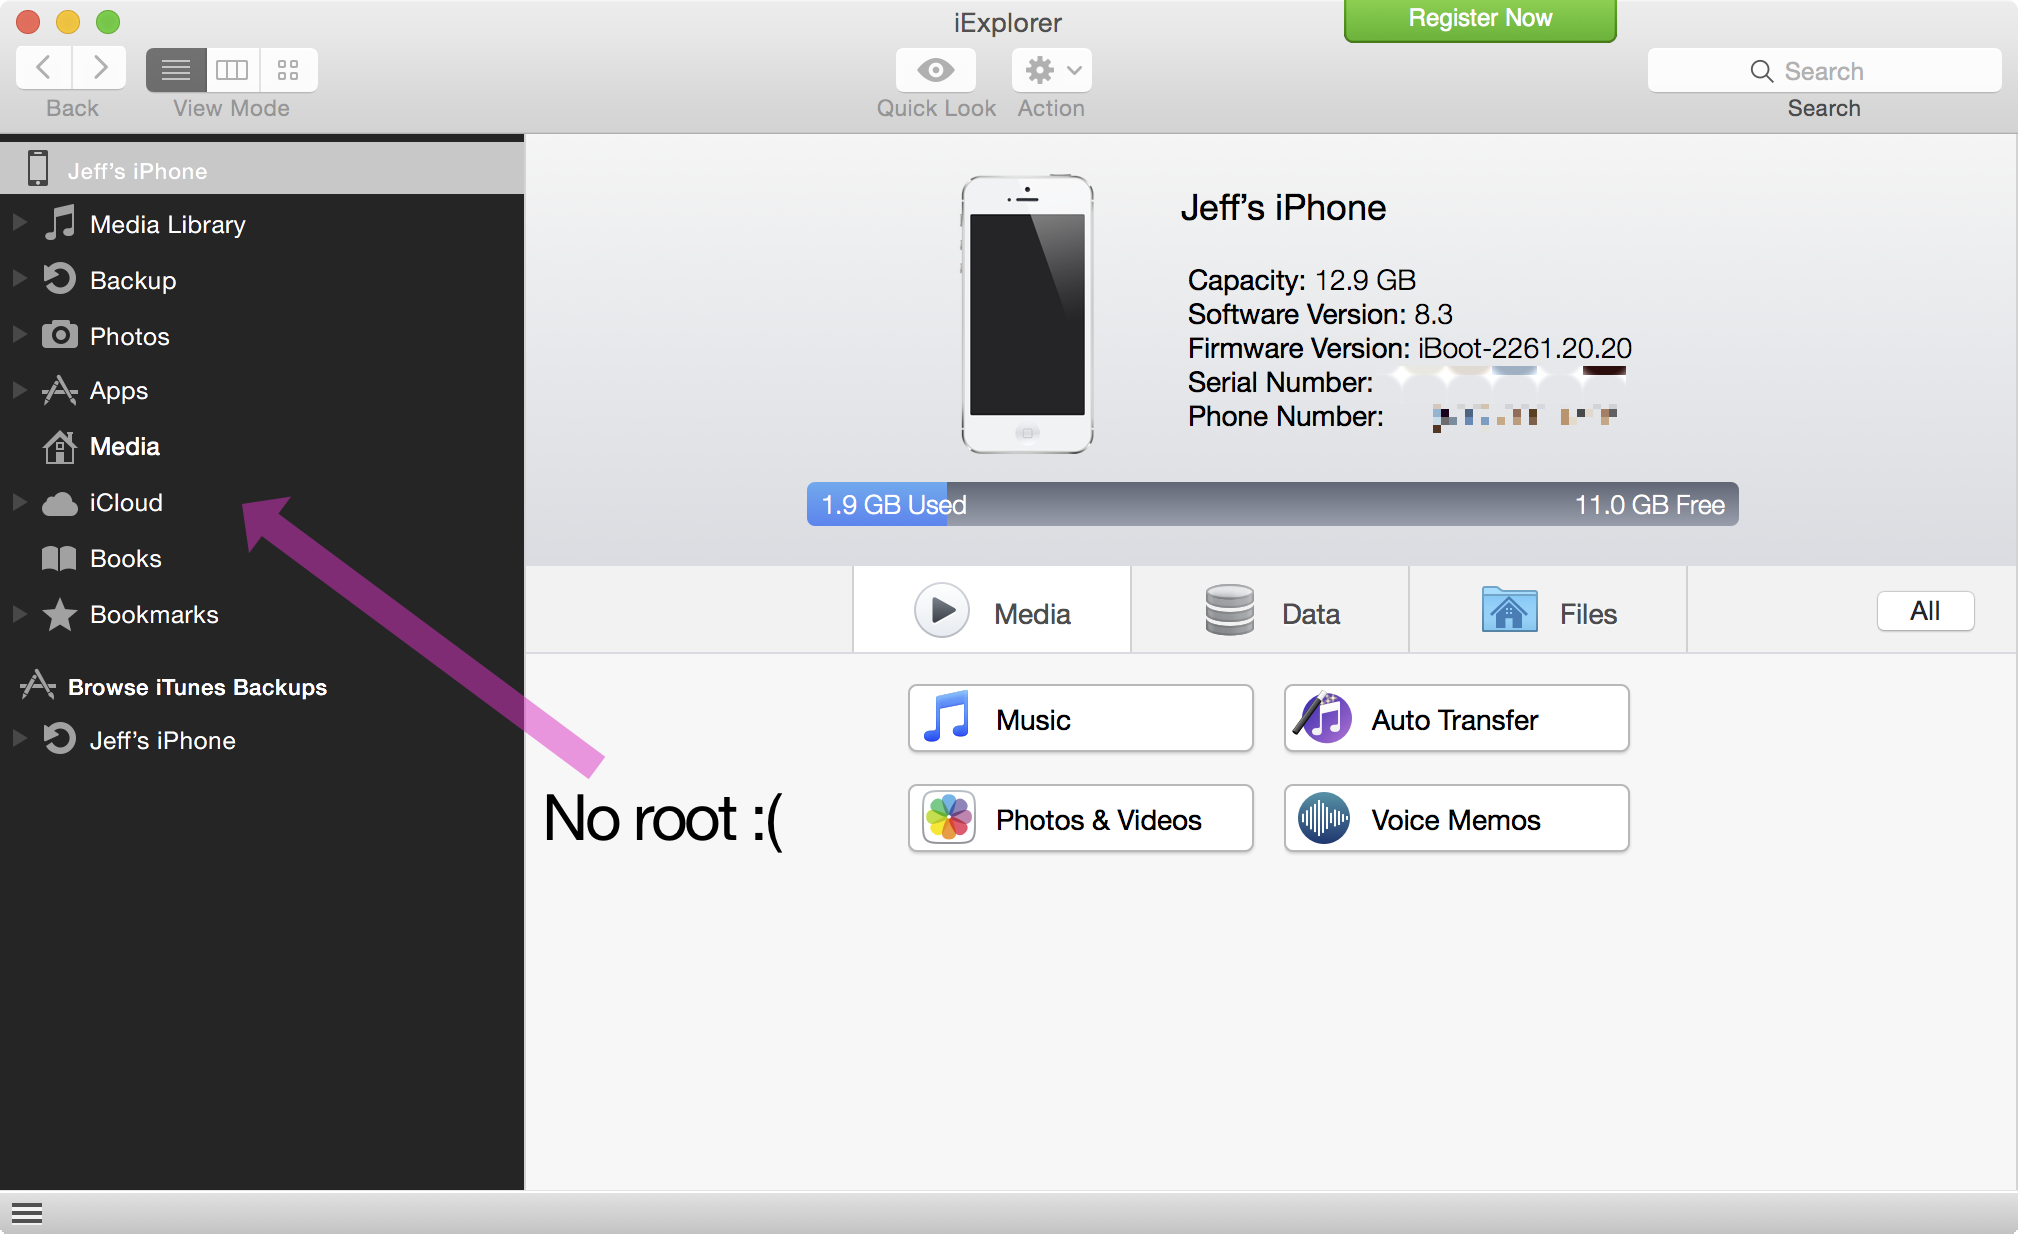 No root afc2 iOS 8.3